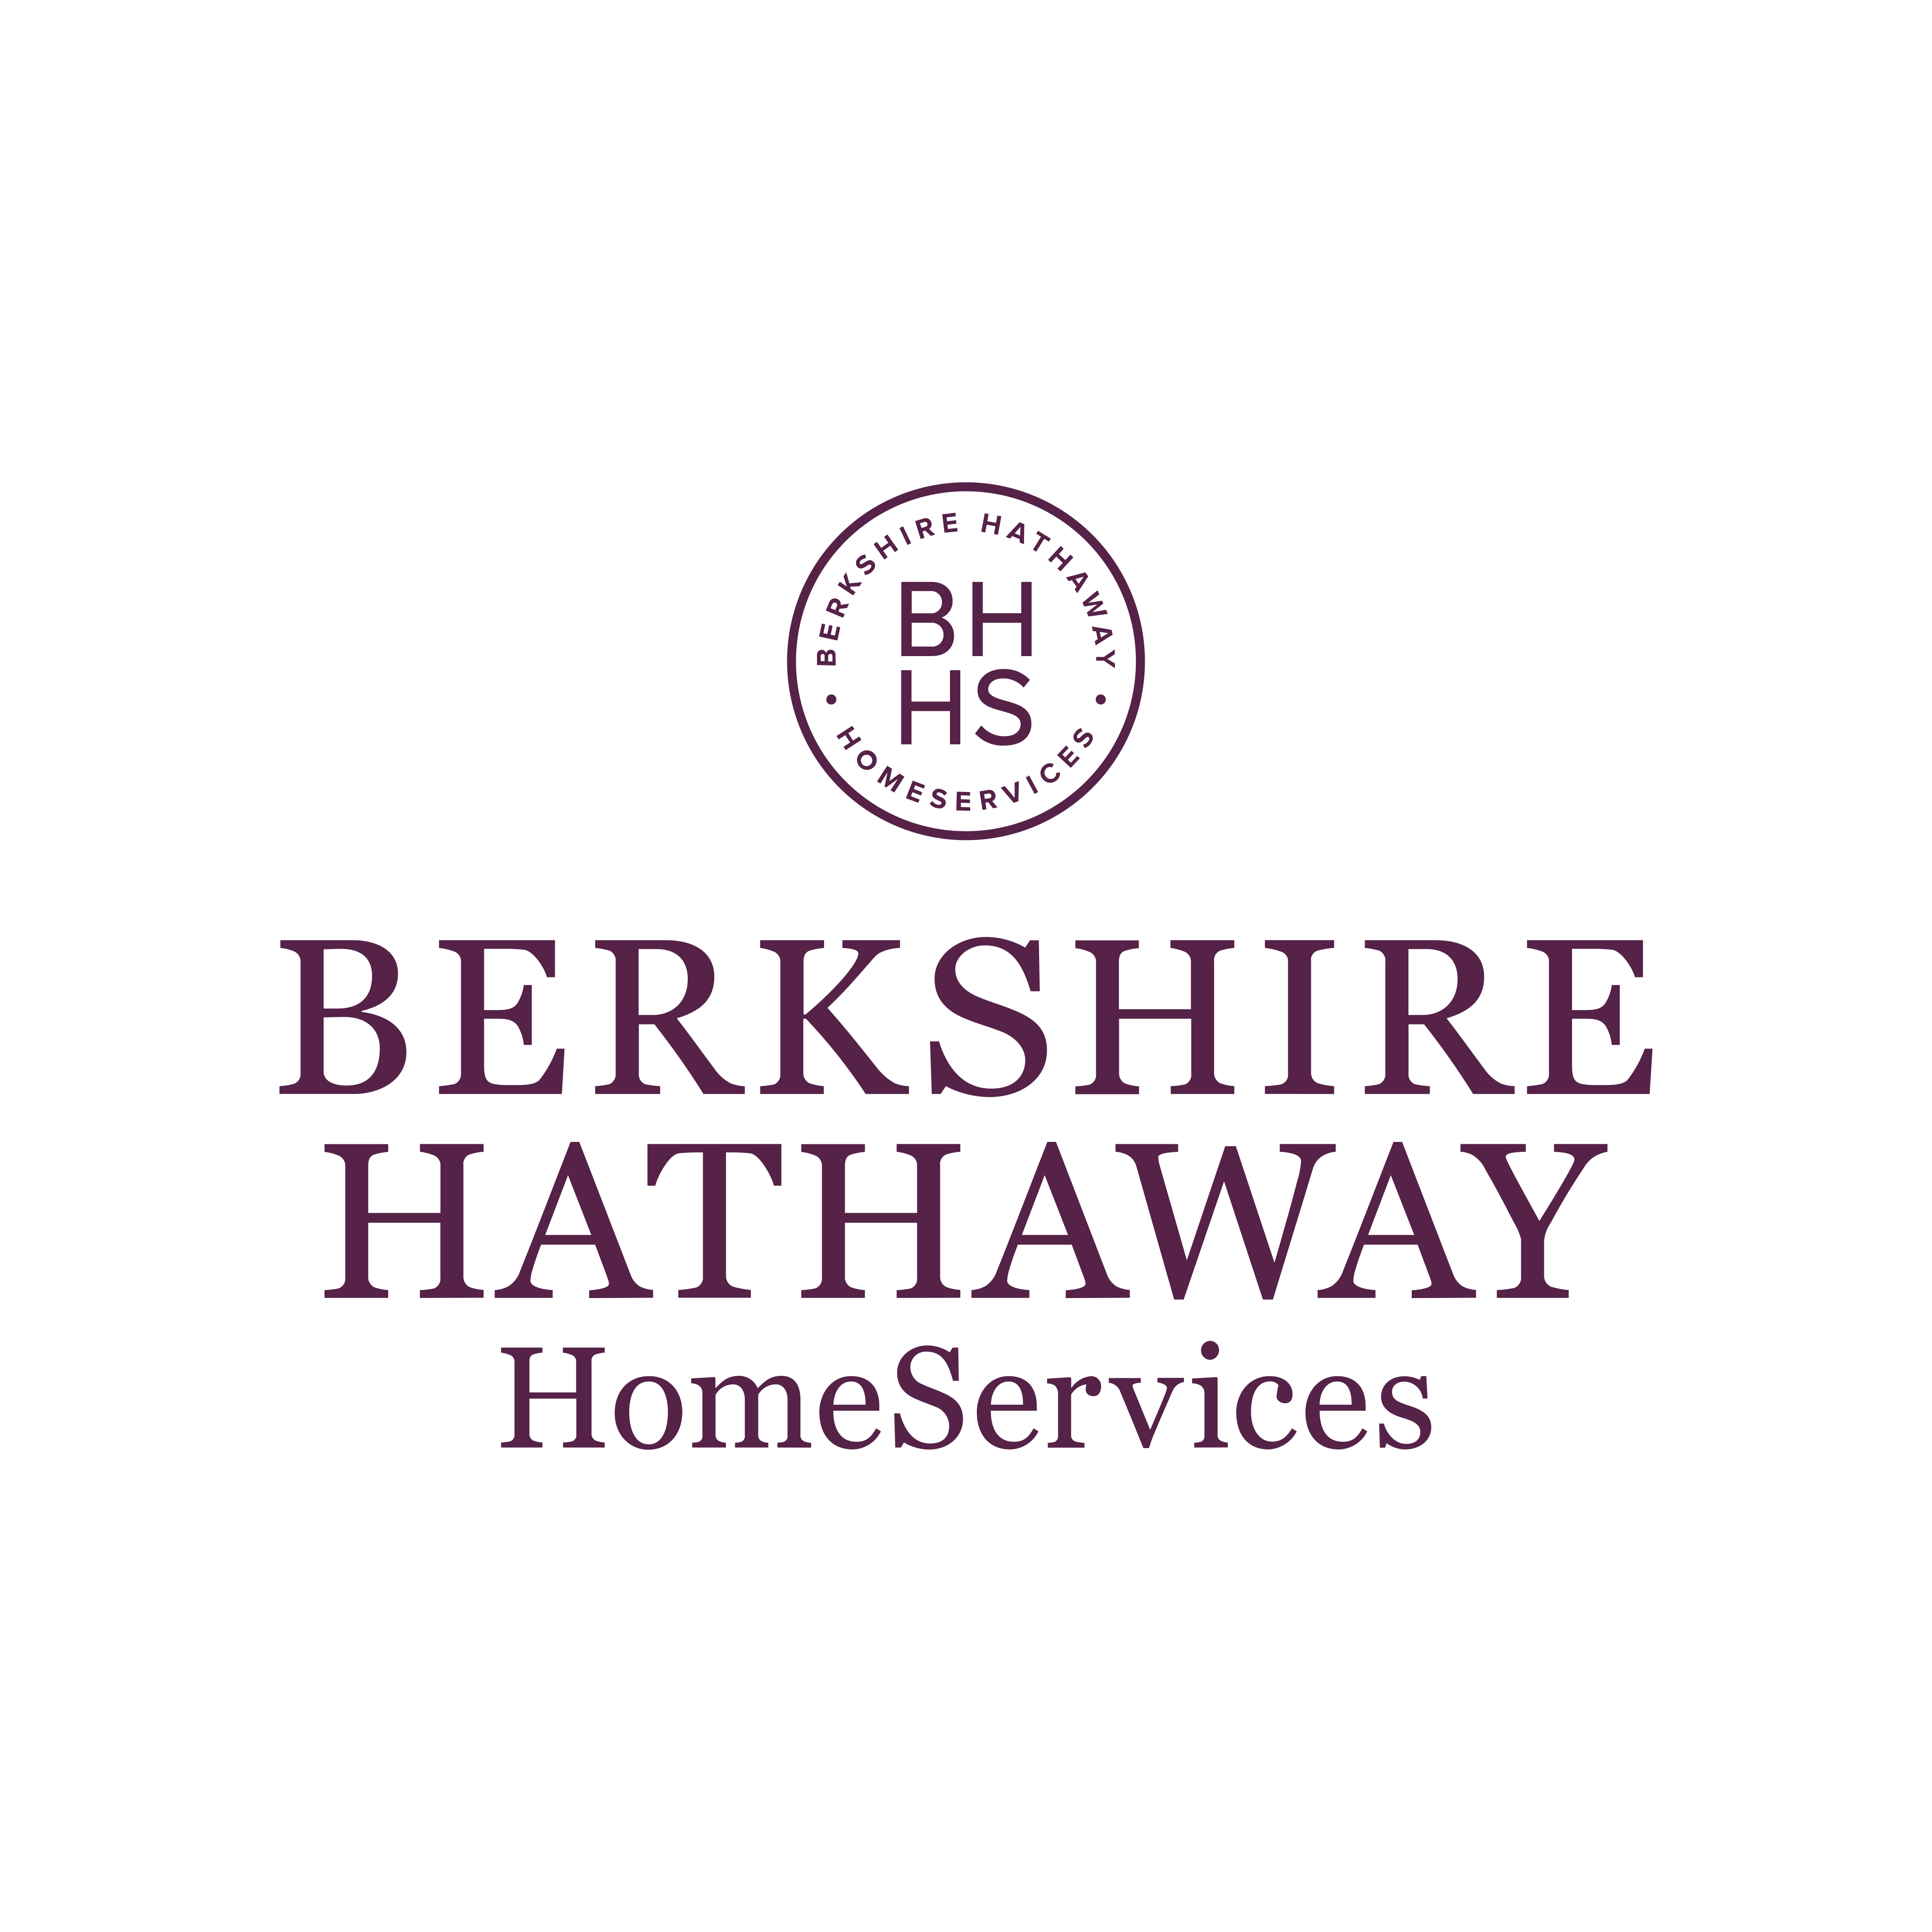 berkshire hathaway home services logo 0 - Berkshire Hathaway HomeServices Logo